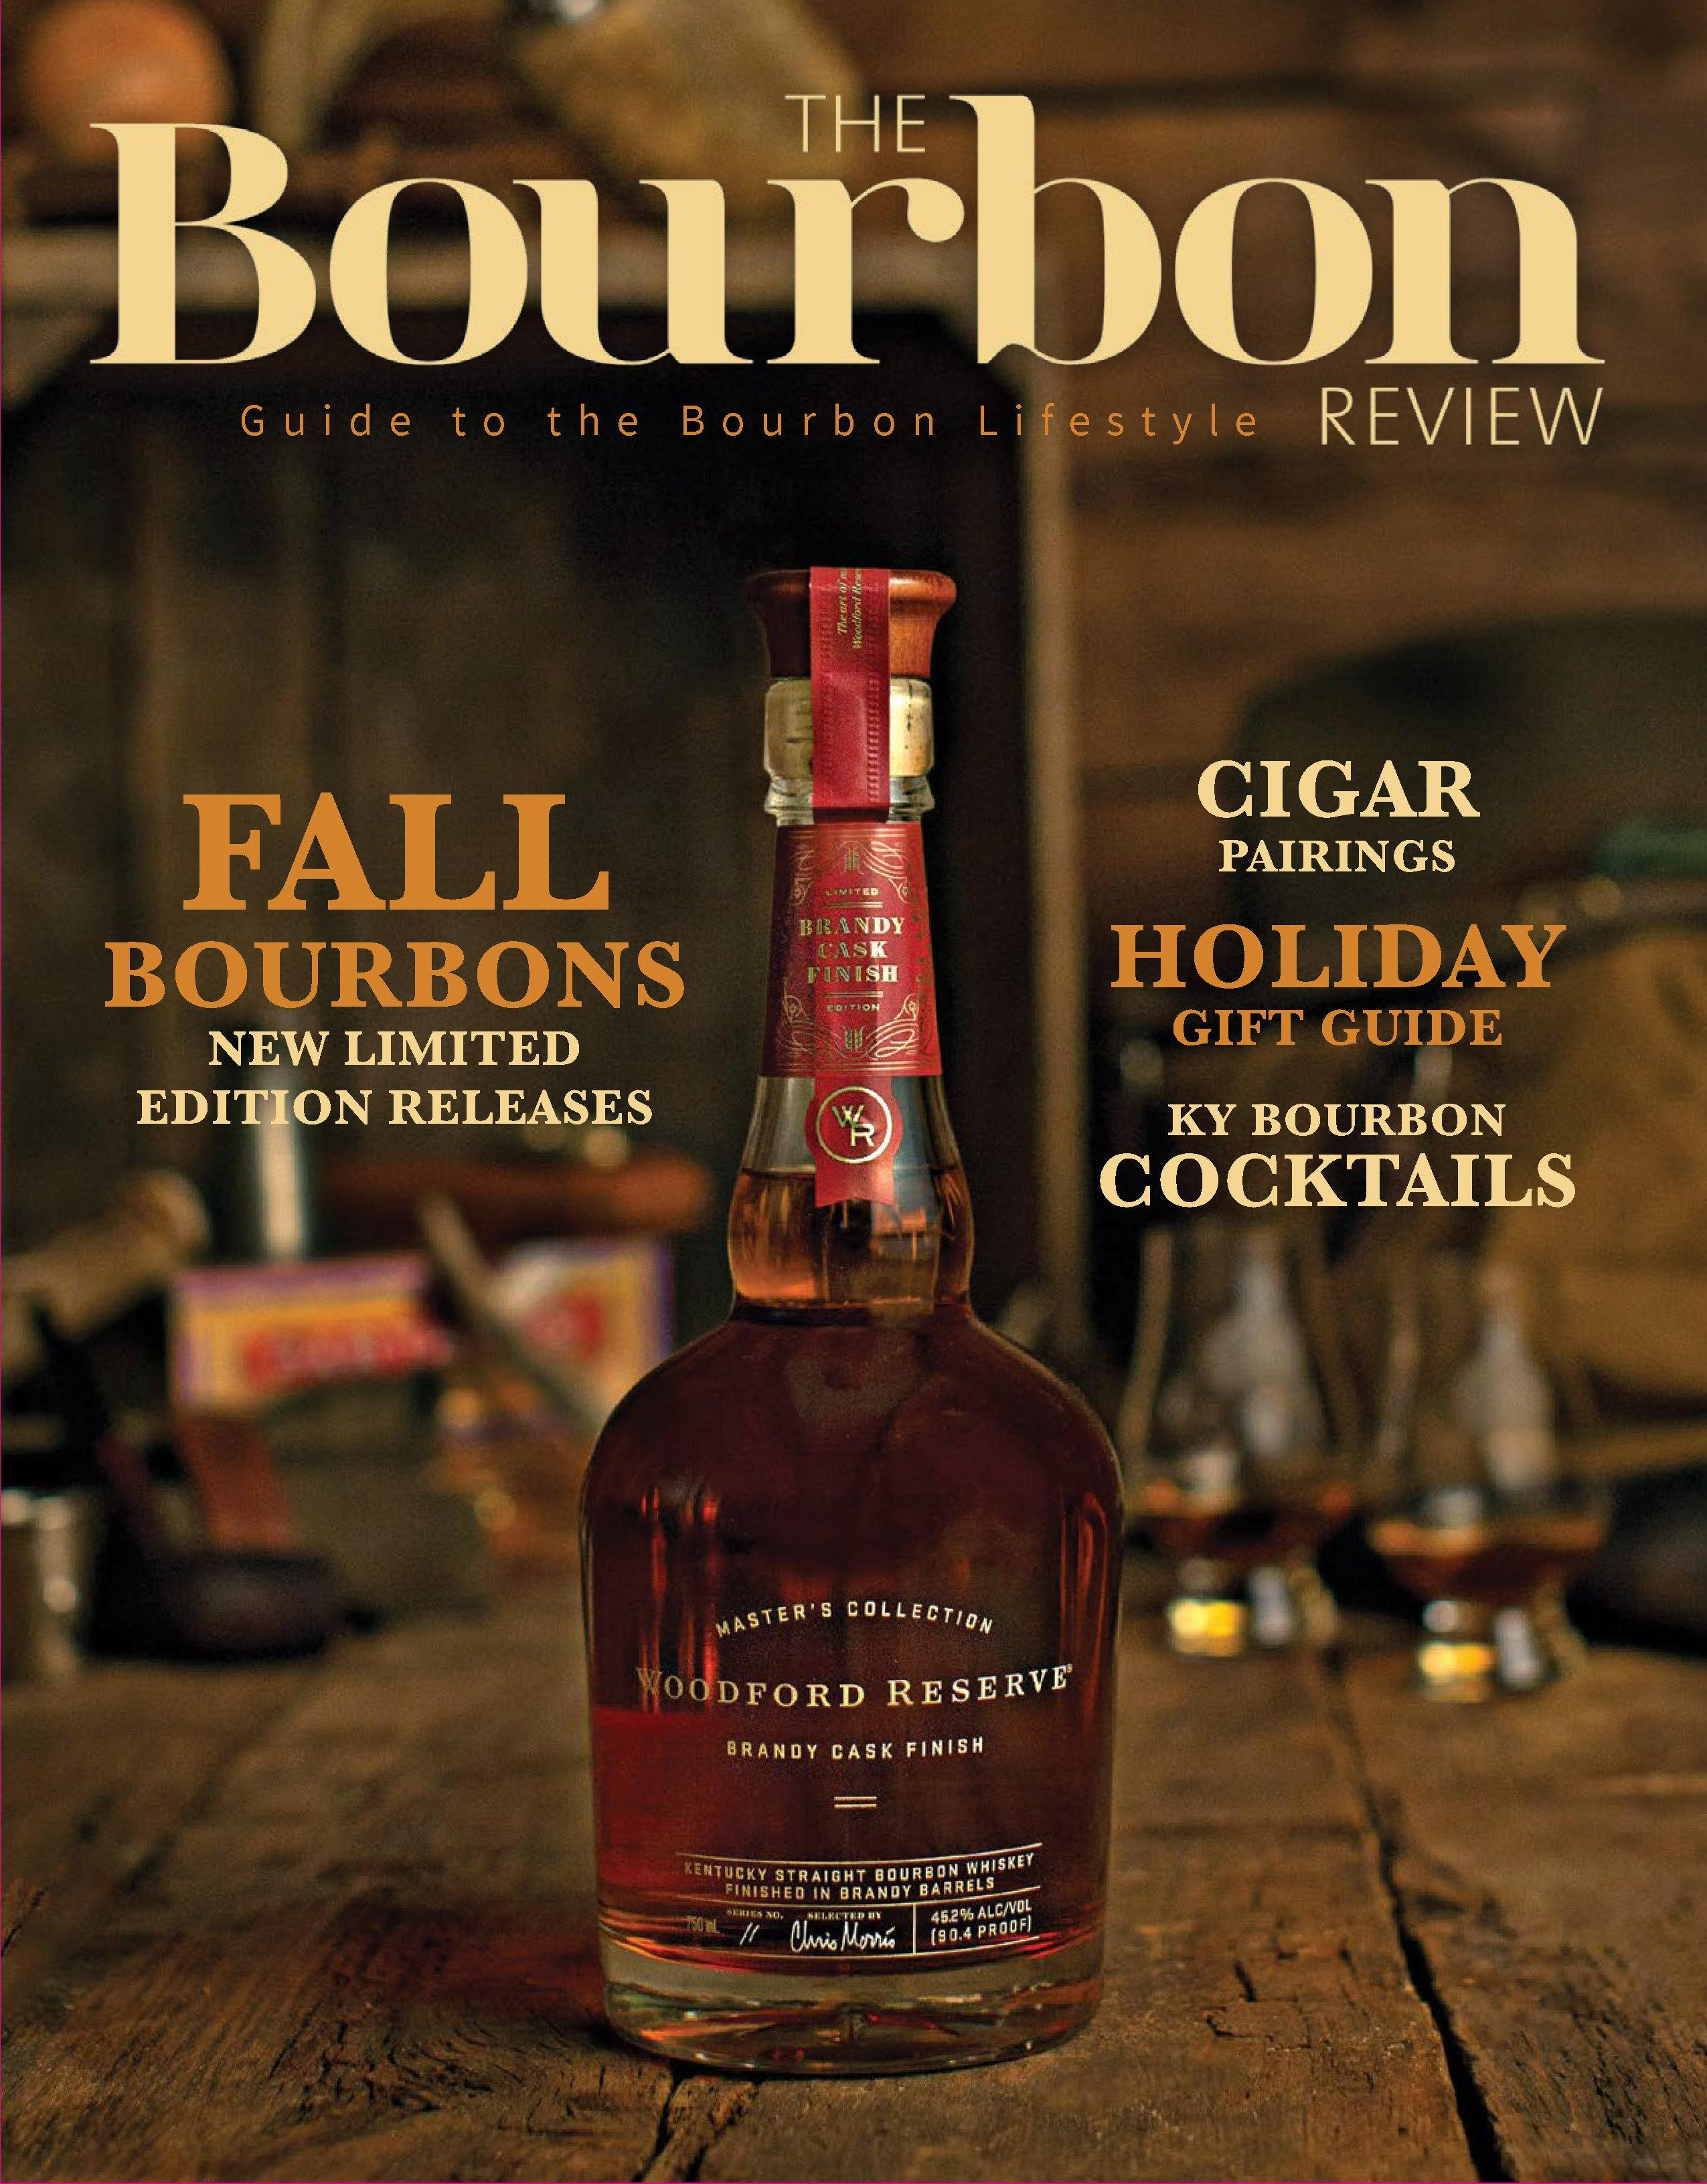 The Bourbon Review Magazine - Issue 64 - Fall 2016 - Bourbon Outfitter